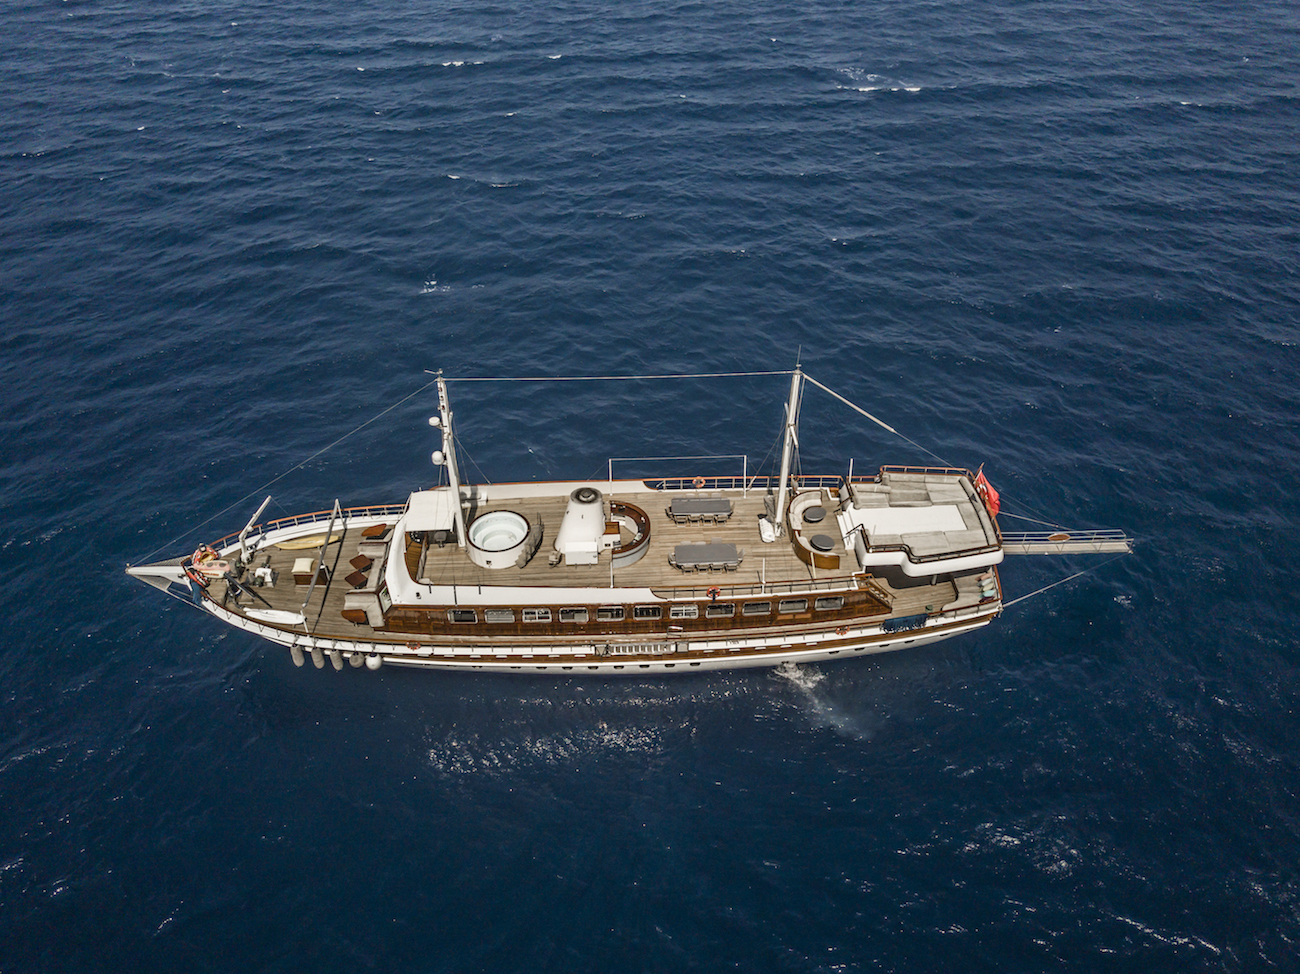 Aerial Of The Yacht